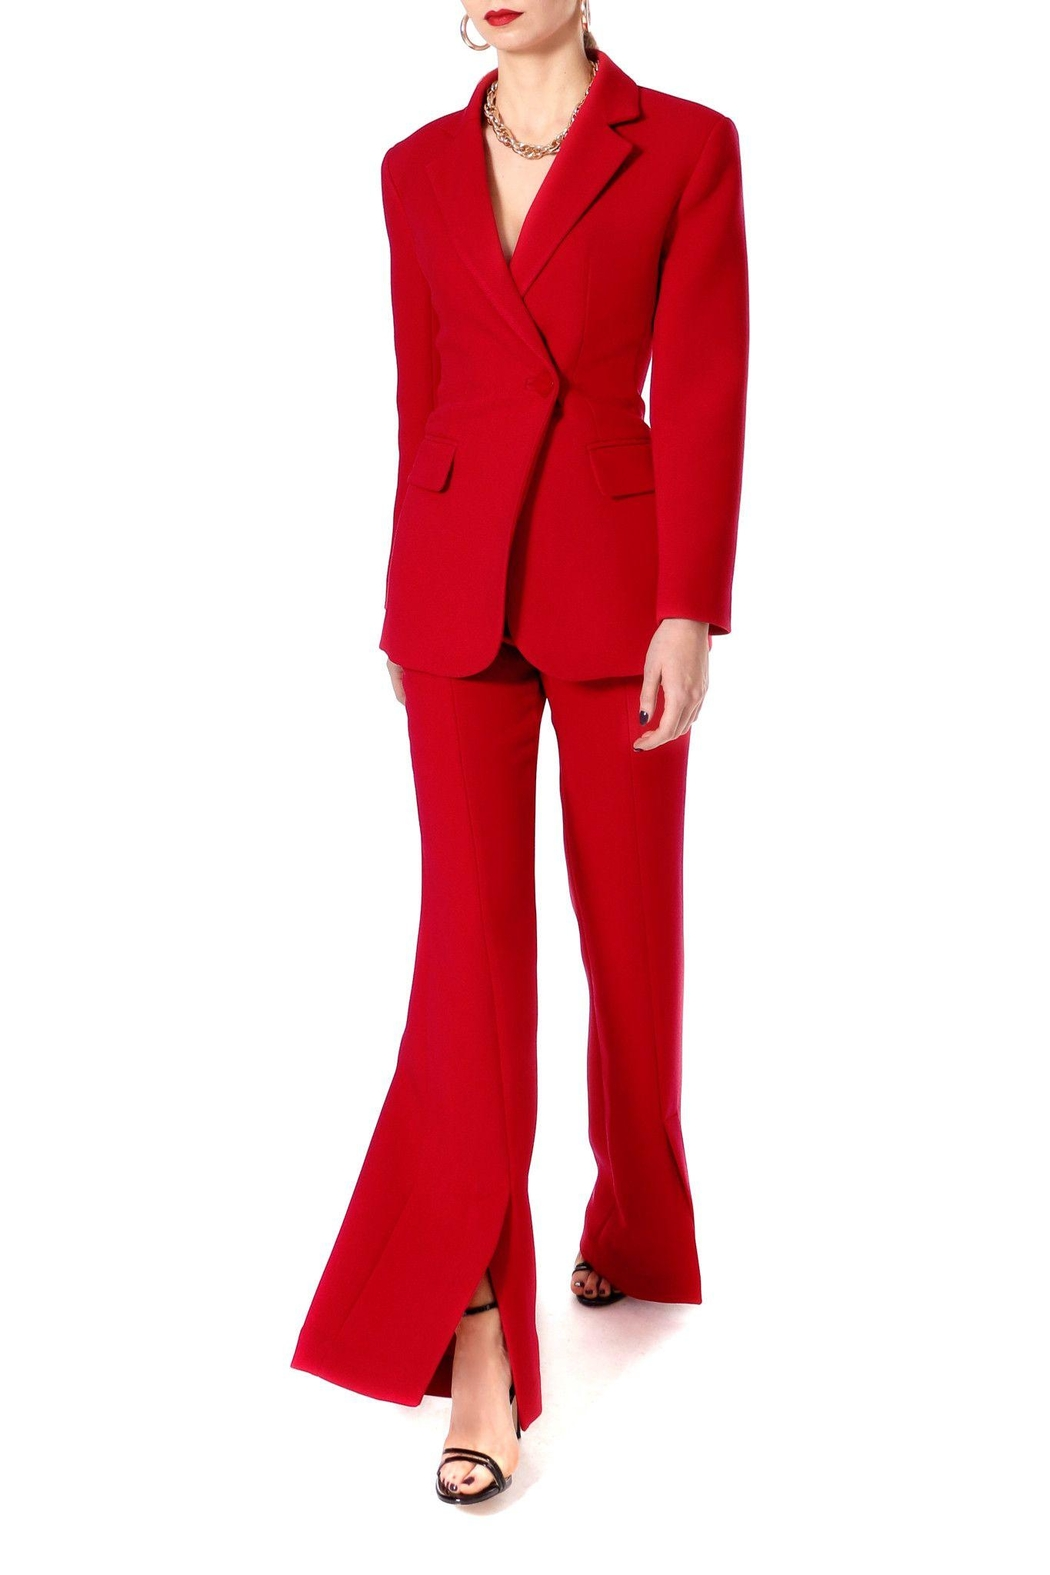 AGGI Pants Monica Lipstick Red - Height 165 - Back Cropped Image